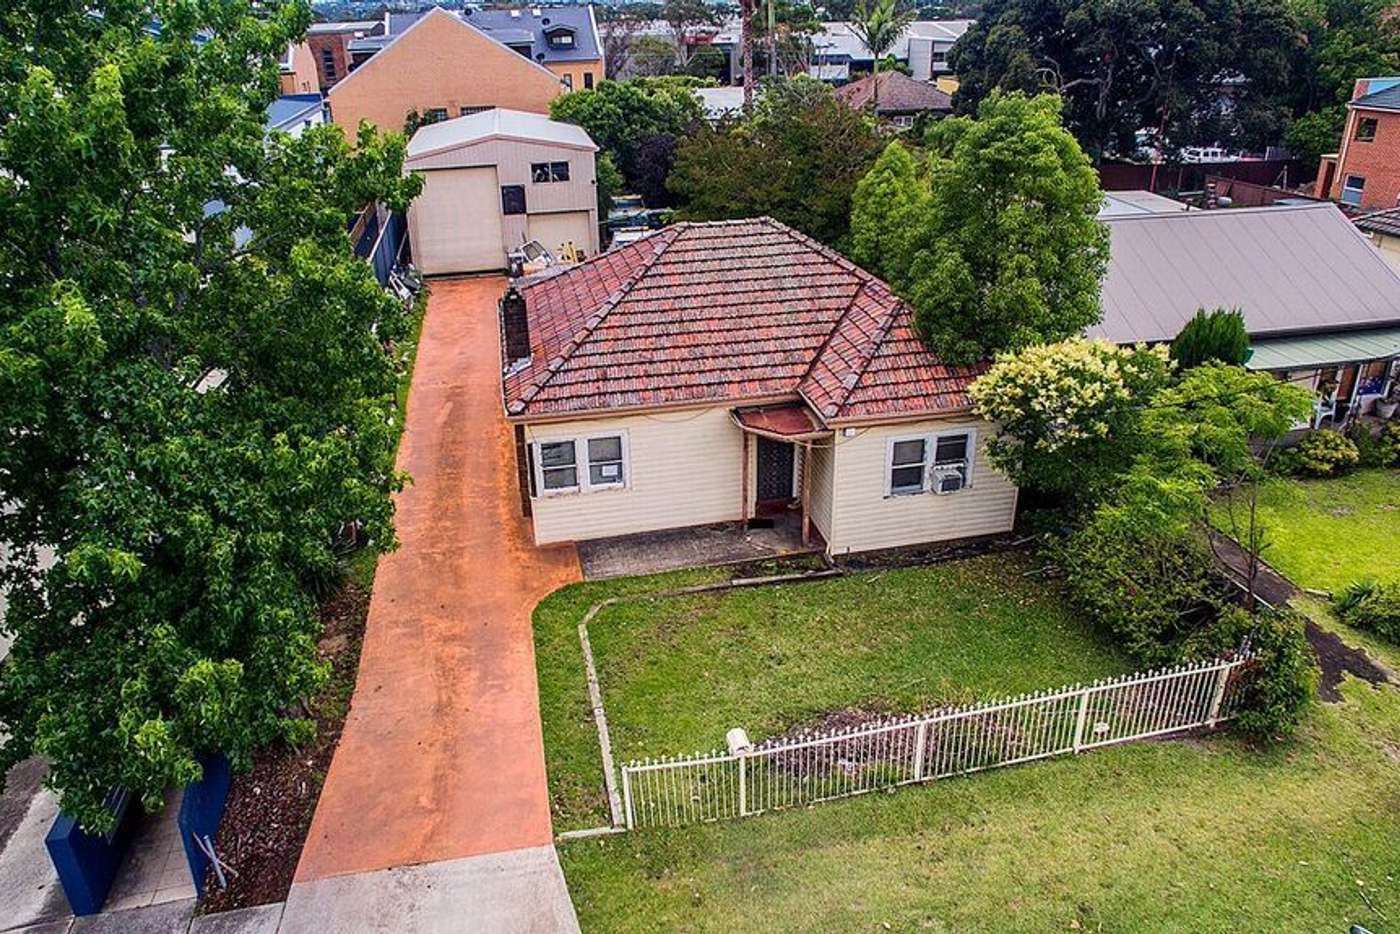 Main view of Homely house listing, 35 Asquith Street, Silverwater NSW 2128